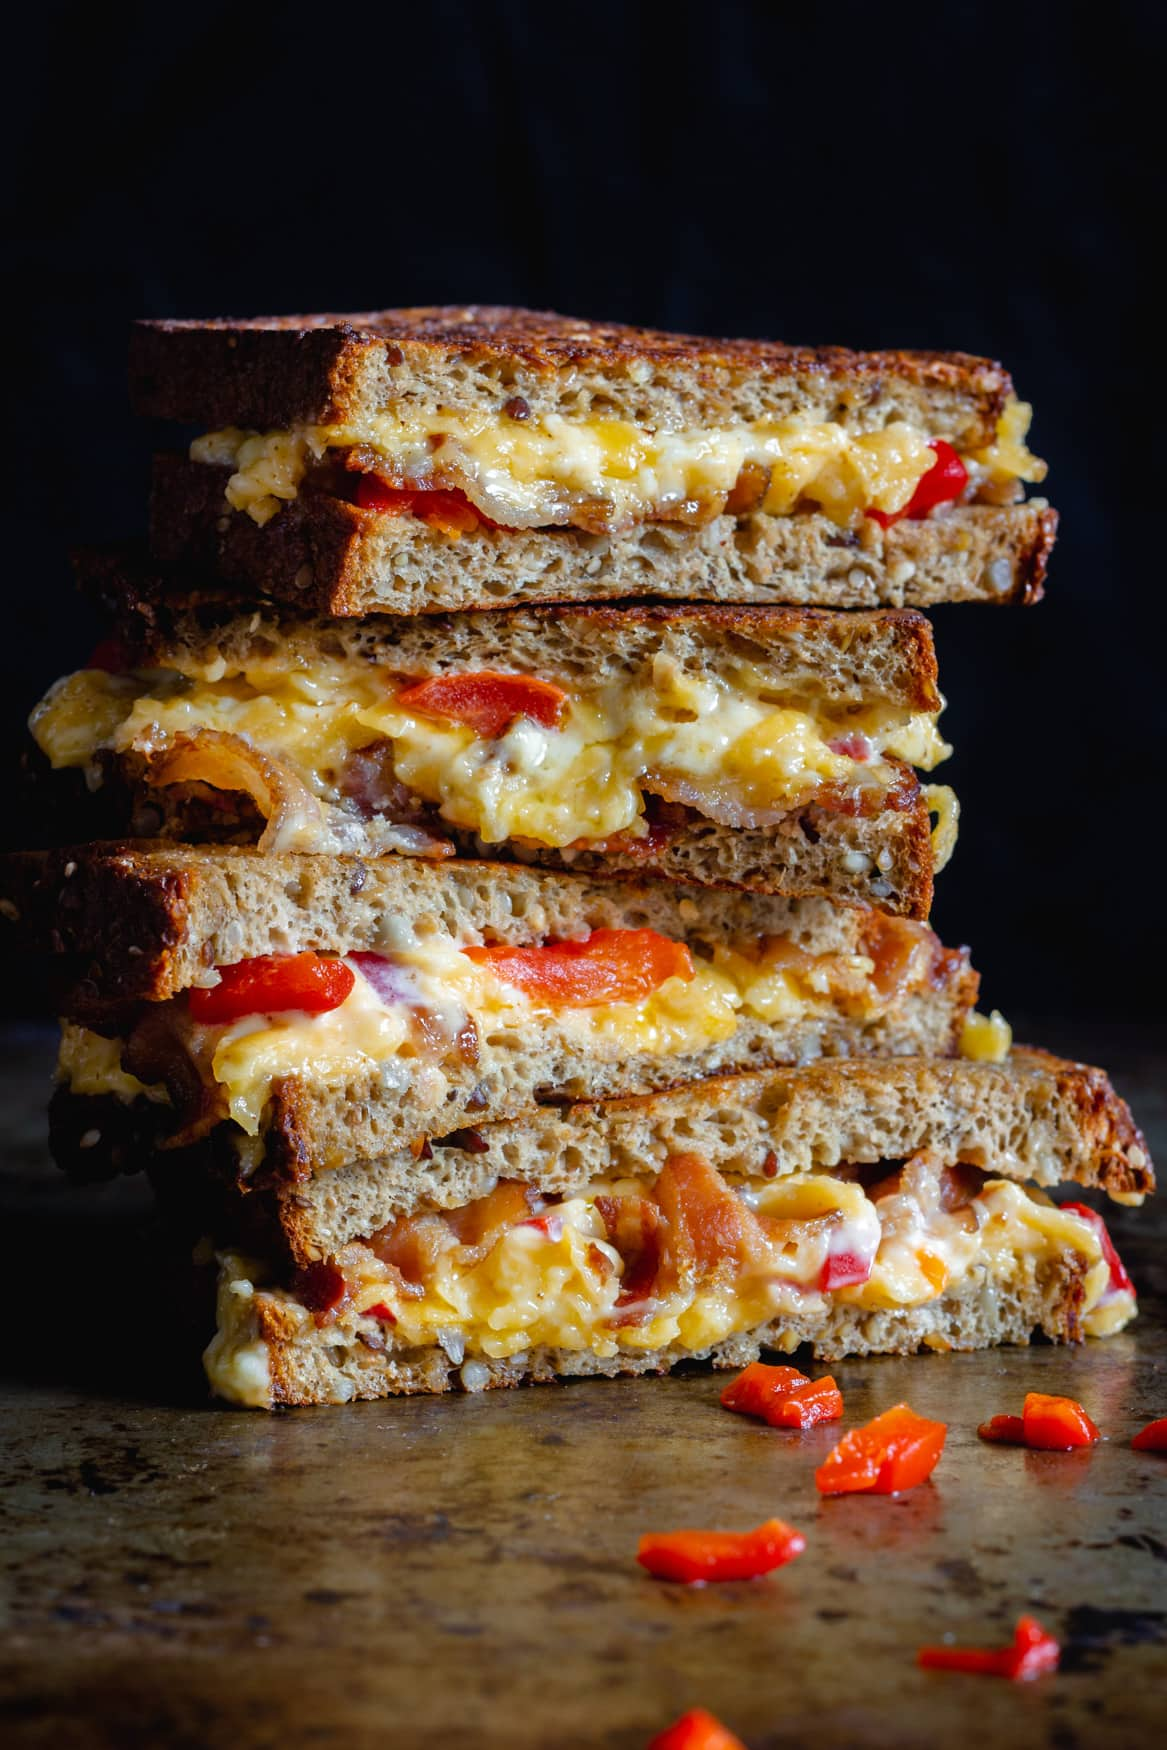 Keto Grilled Bacon & Pimento Cheese Sandwich